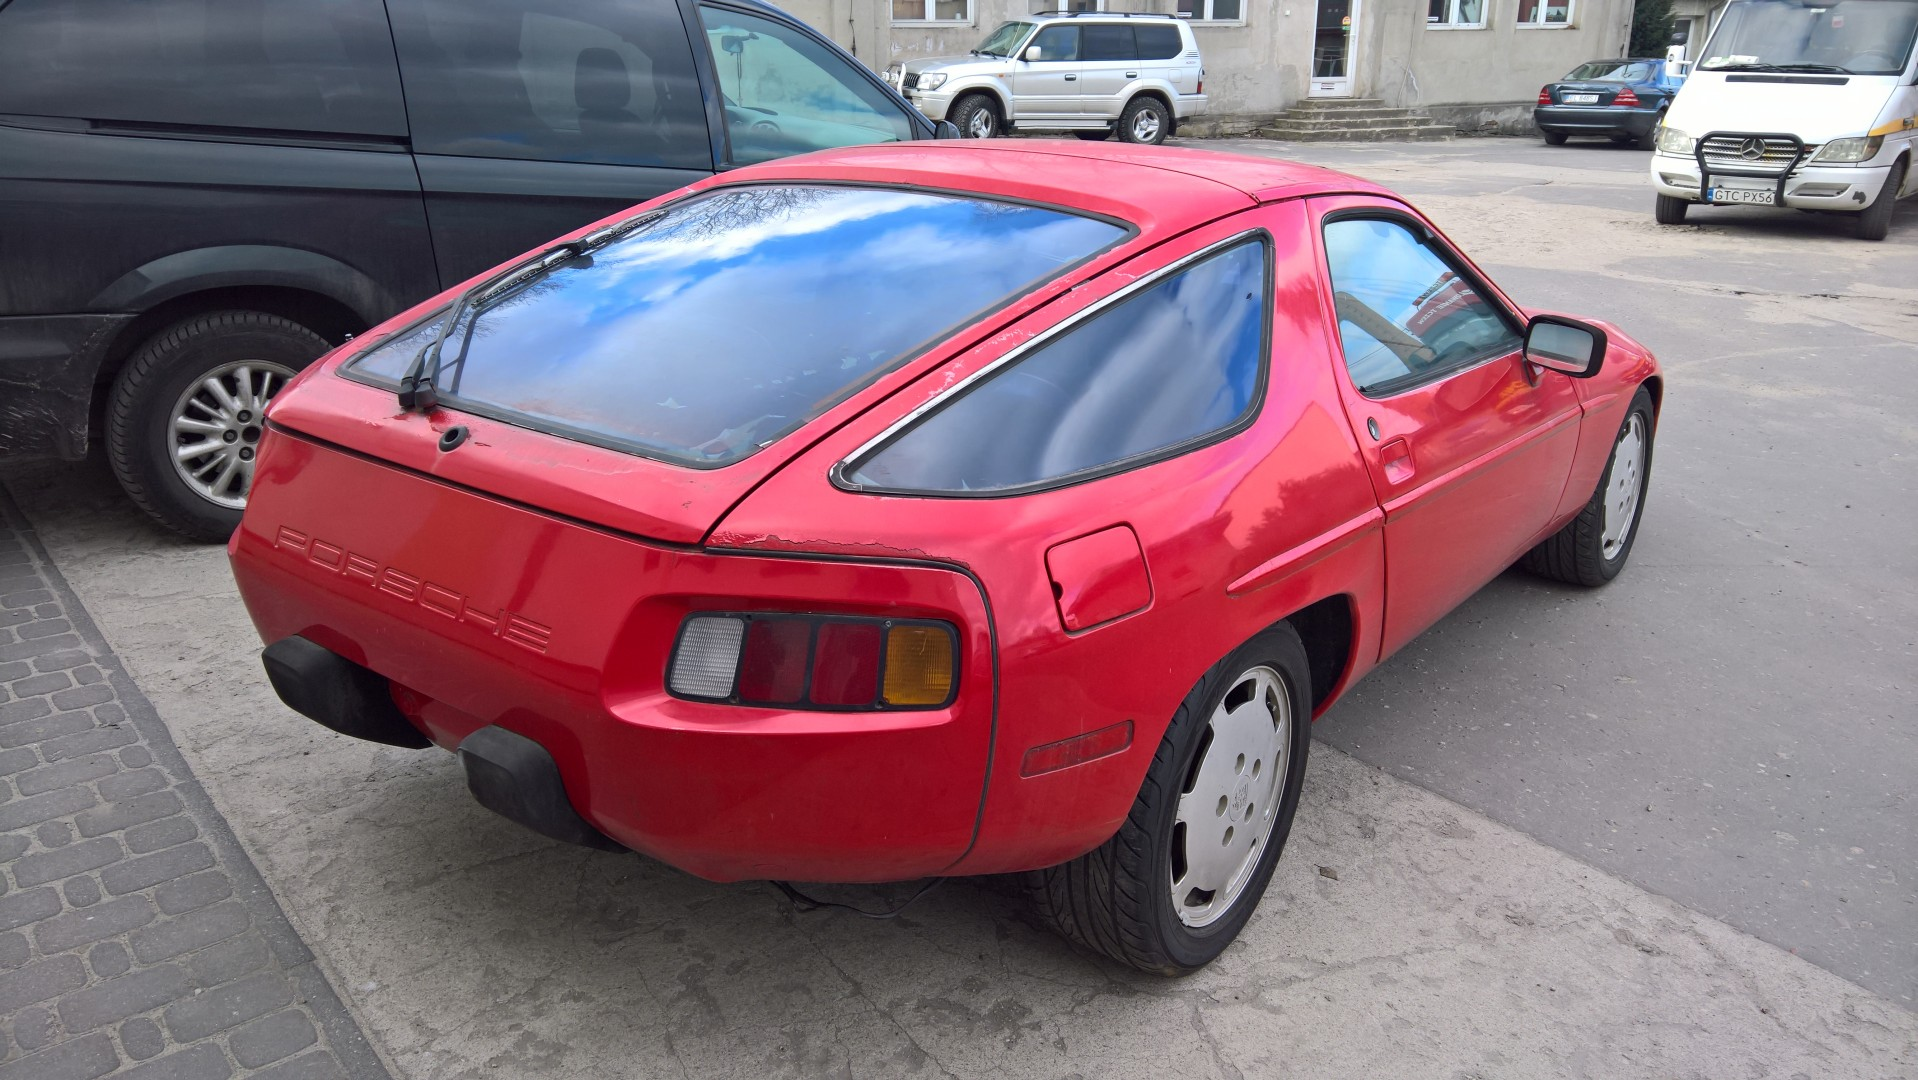 Porsche 928 1982 - MBB Collection